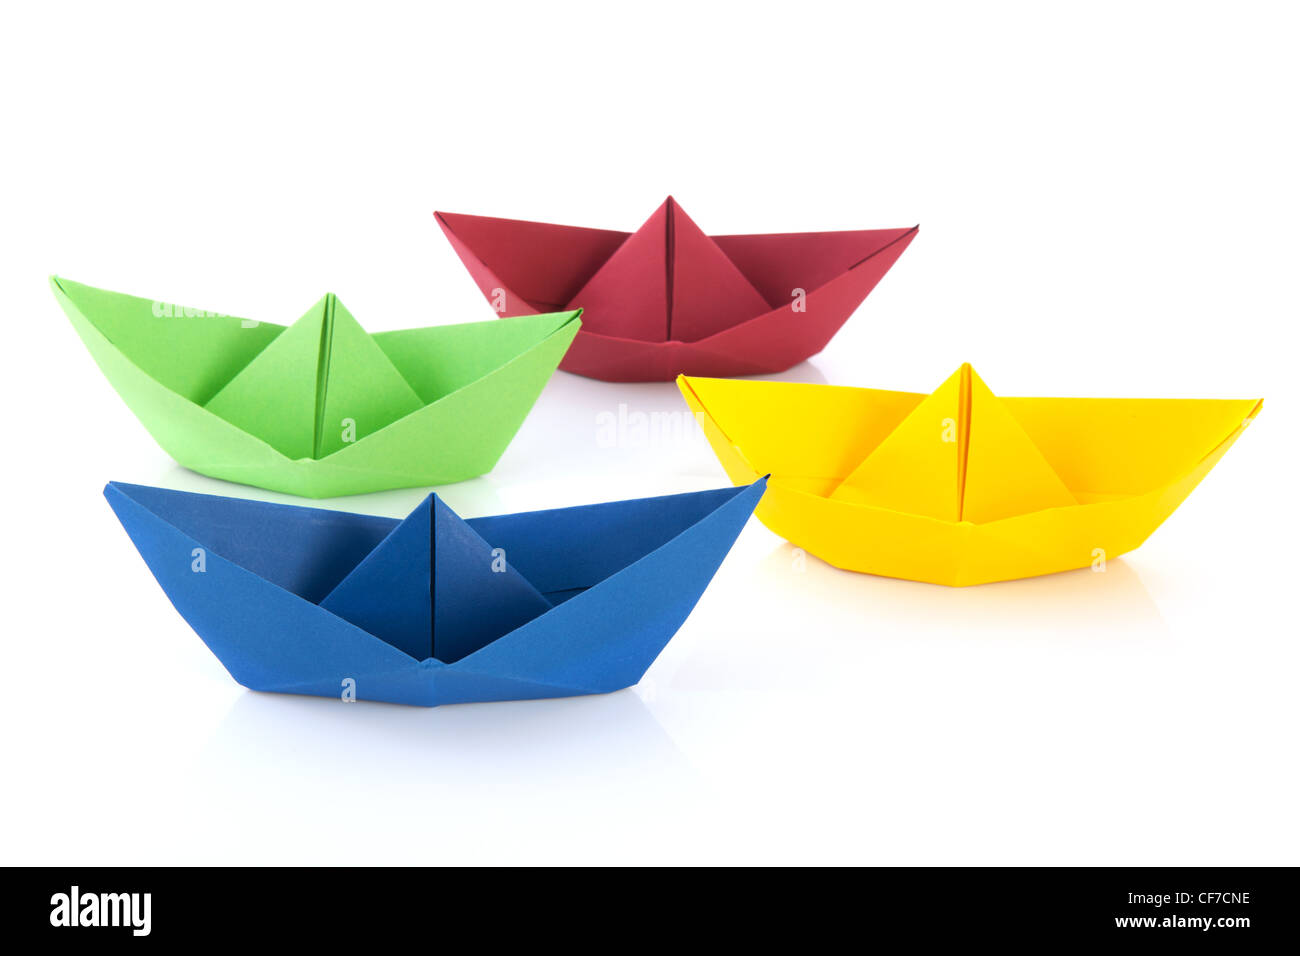 Colorful folded paper boats isolated over white background - Stock Image